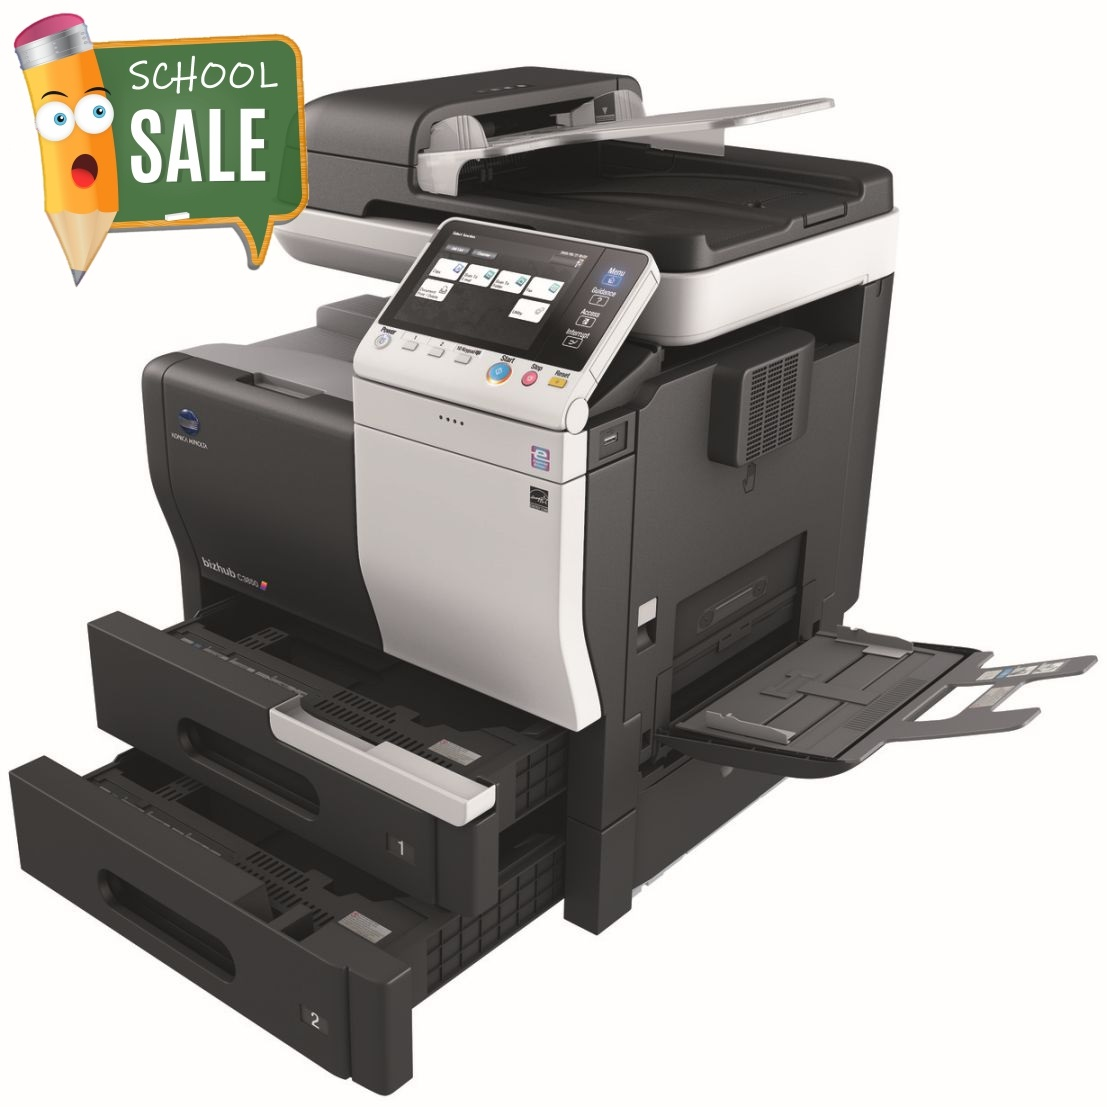 Konica Minolta Bizhub C3850 Colour Copier Printer Rental Price Offers Open Paper Trays Bypass